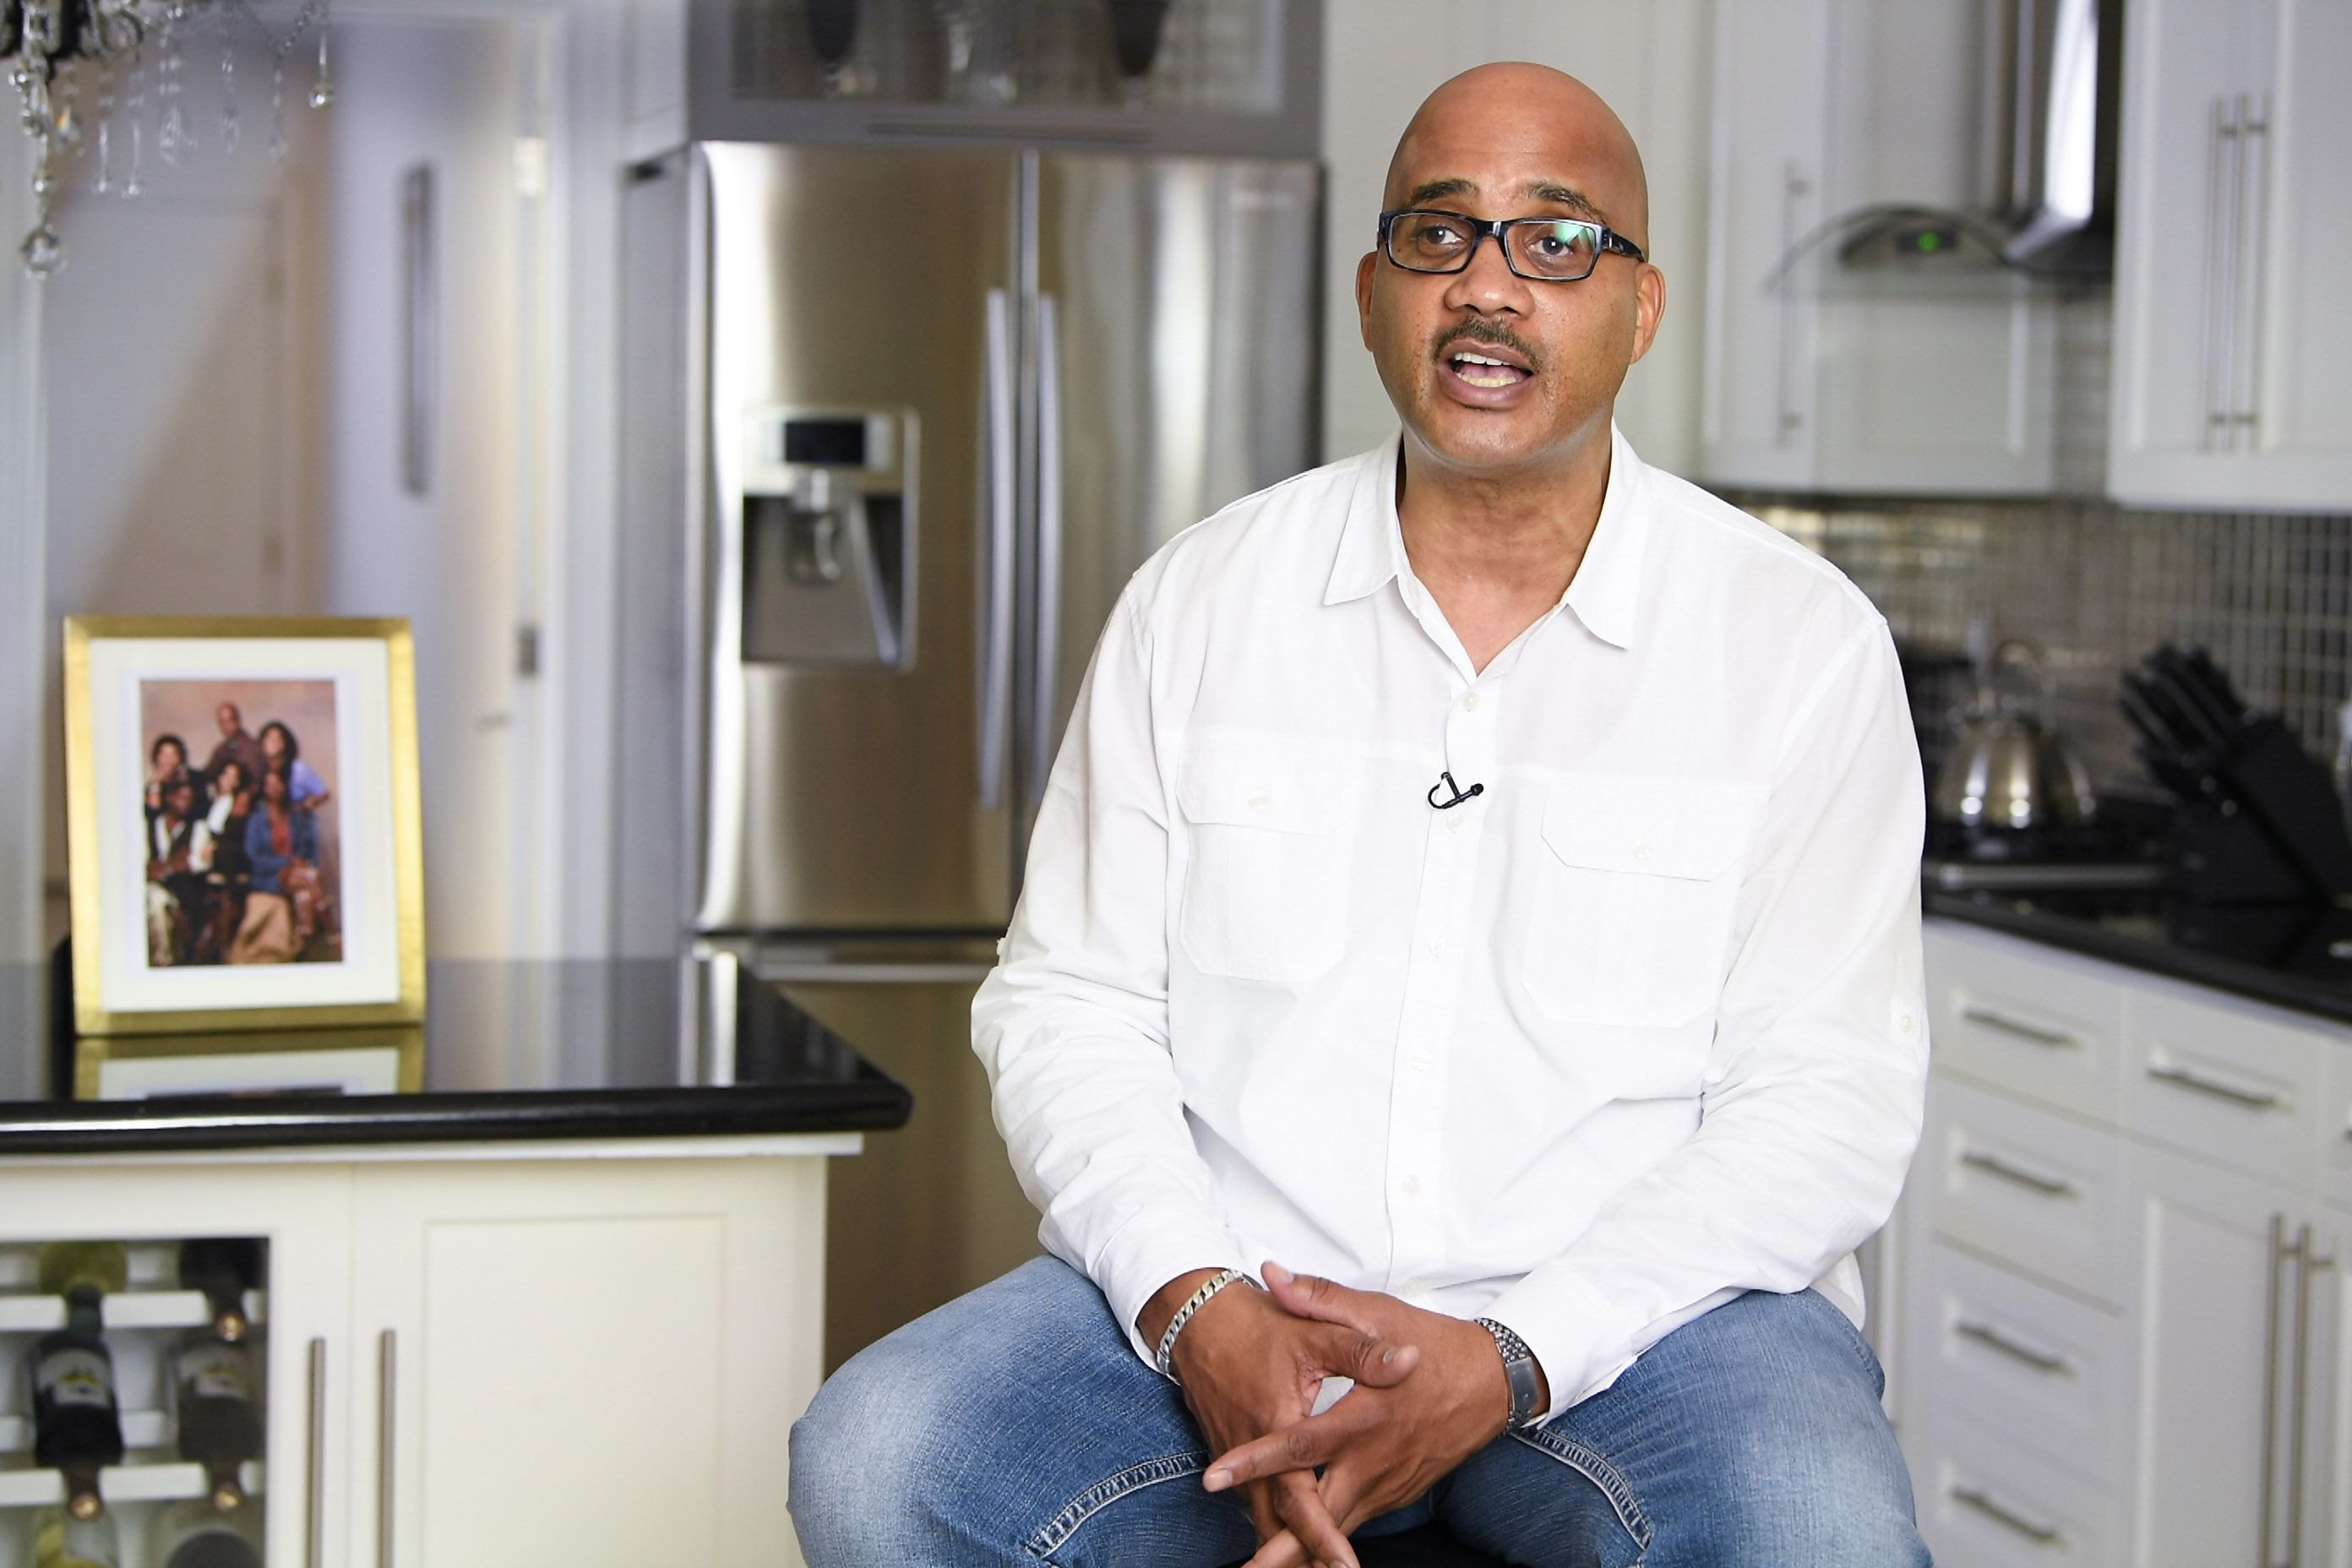 """John Henton in an interview in celebration of """"Living Single"""" 25th anniversary in 2018 in Los Angeles 